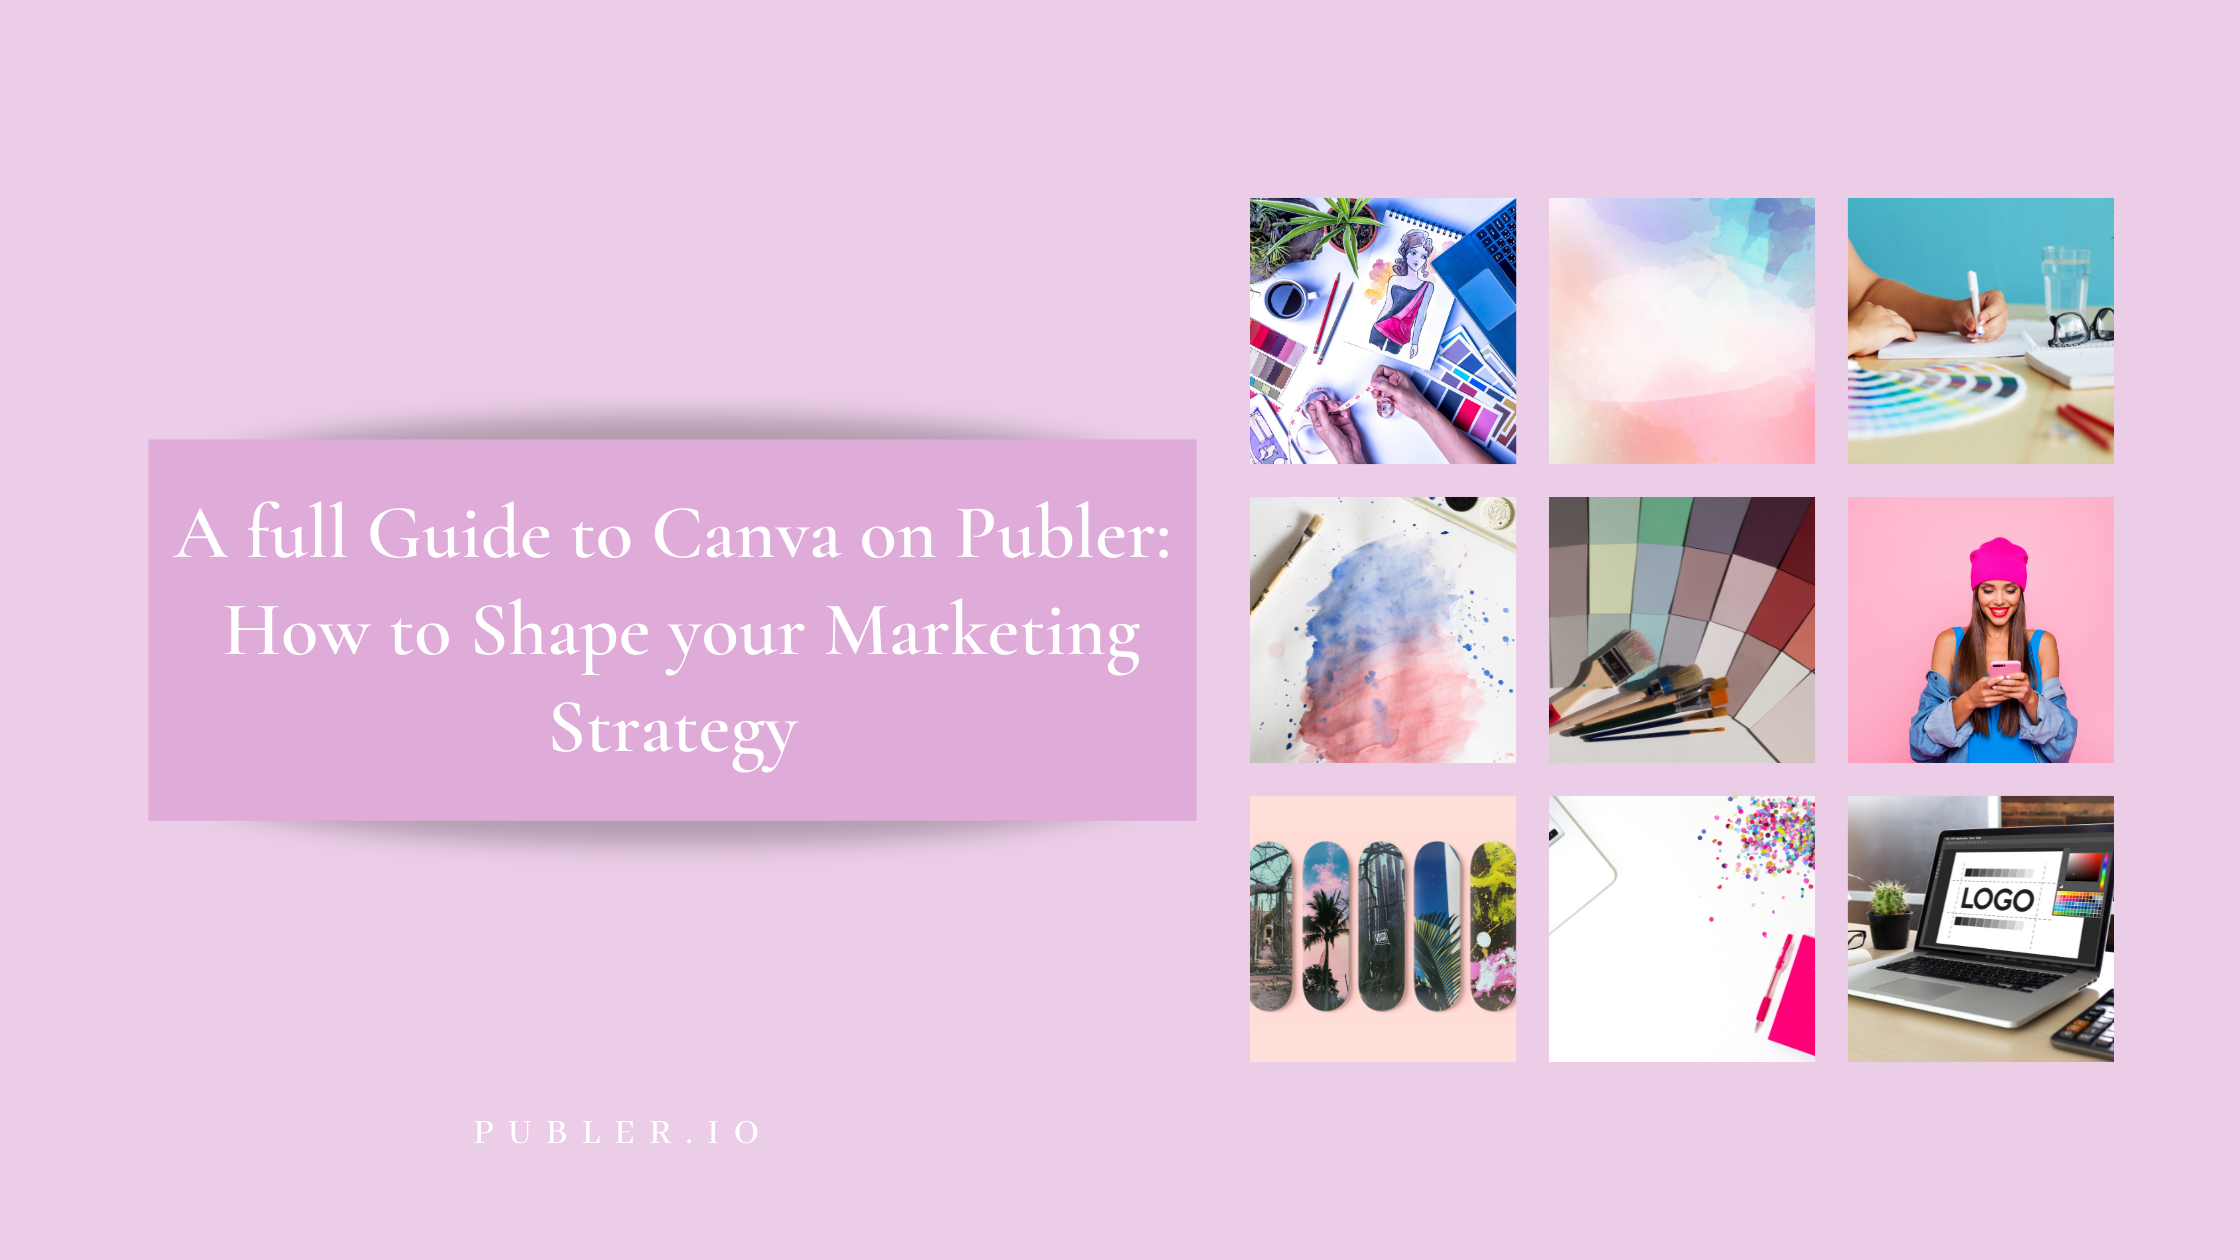 A full Guide to Canva on Publer:  How to Shape your Marketing Strategy